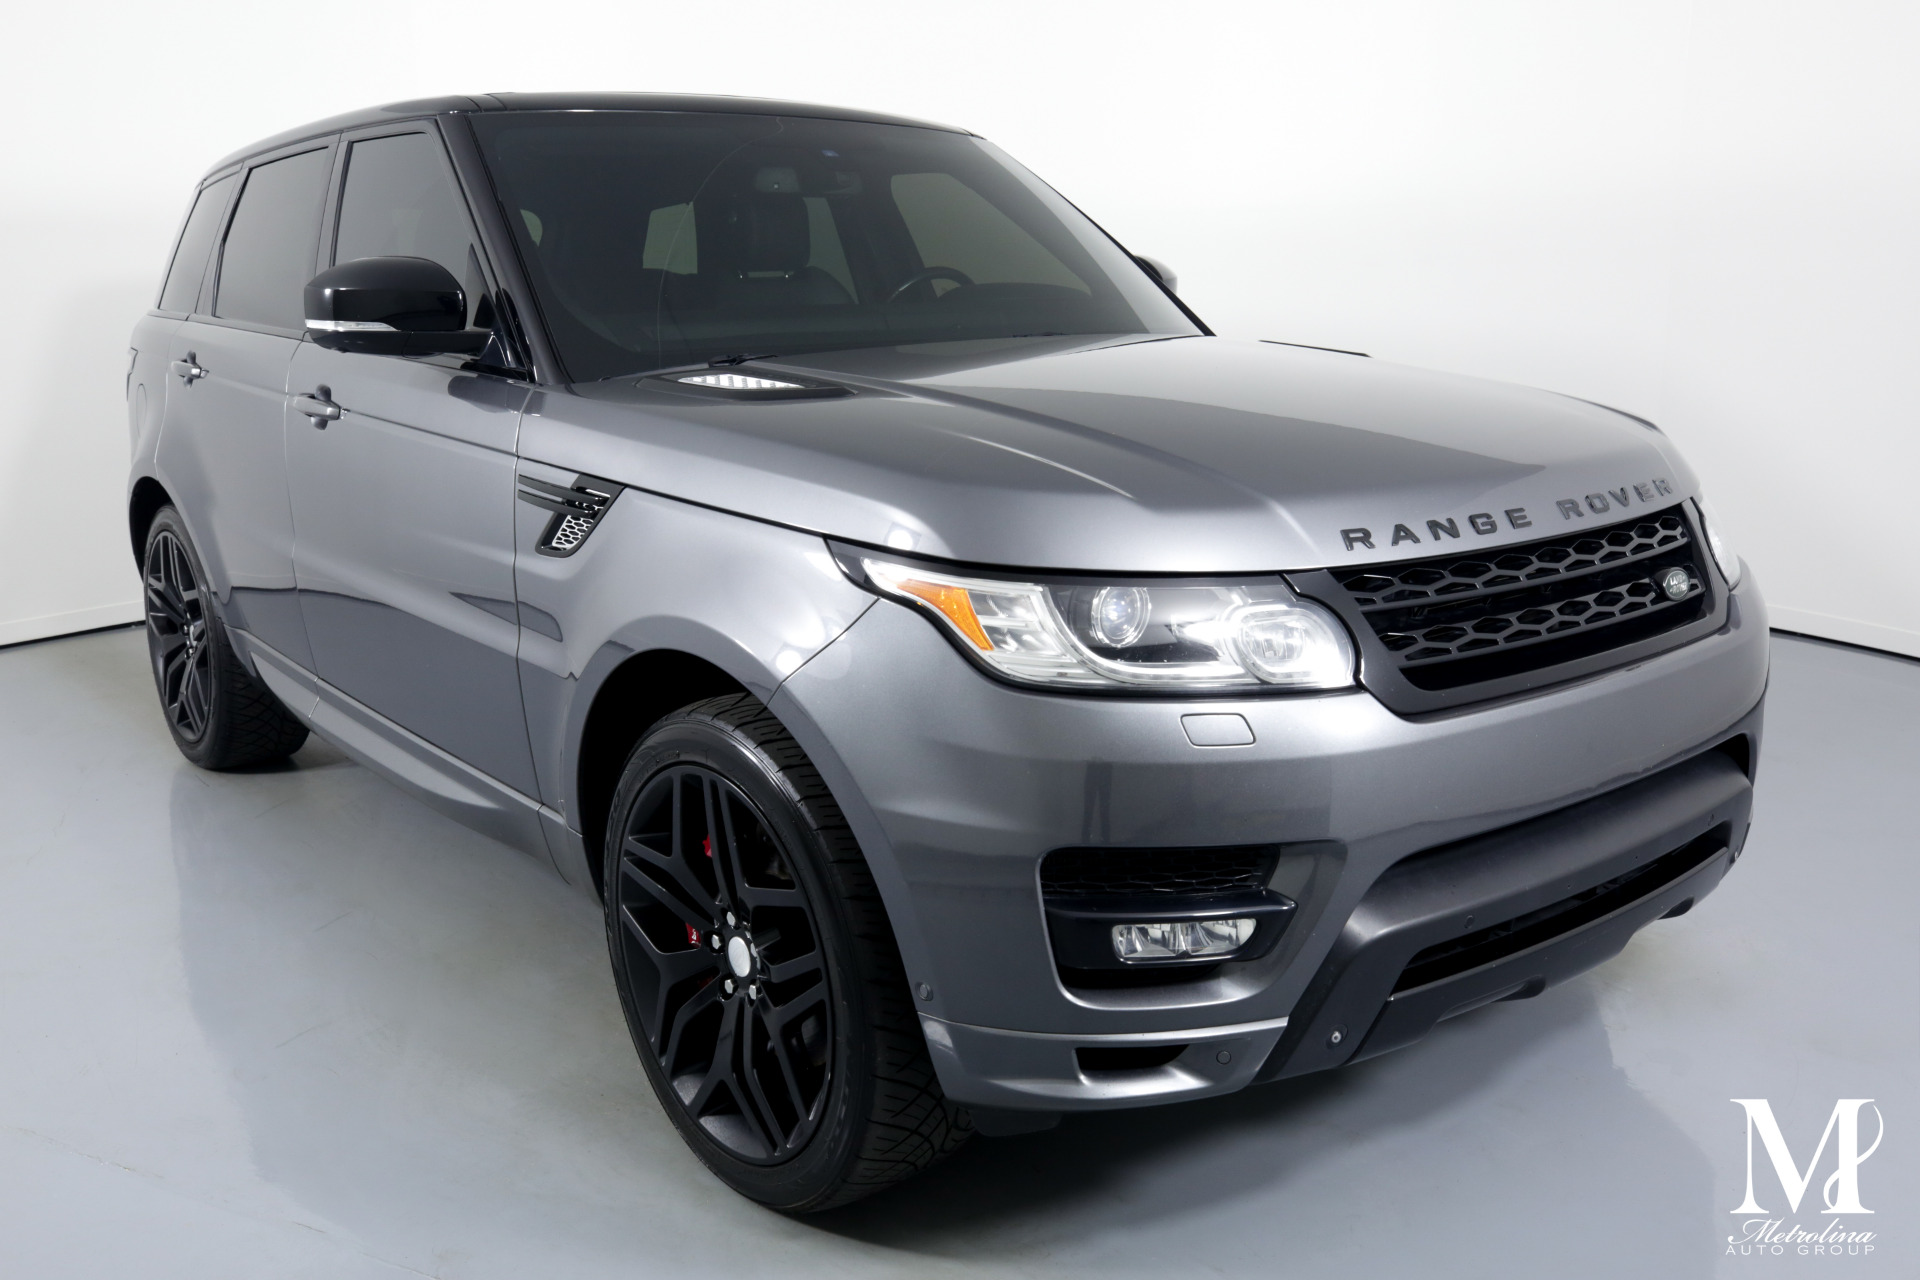 Used 2014 Land Rover Range Rover Sport Autobiography for sale Sold at Metrolina Auto Group in Charlotte NC 28217 - 2